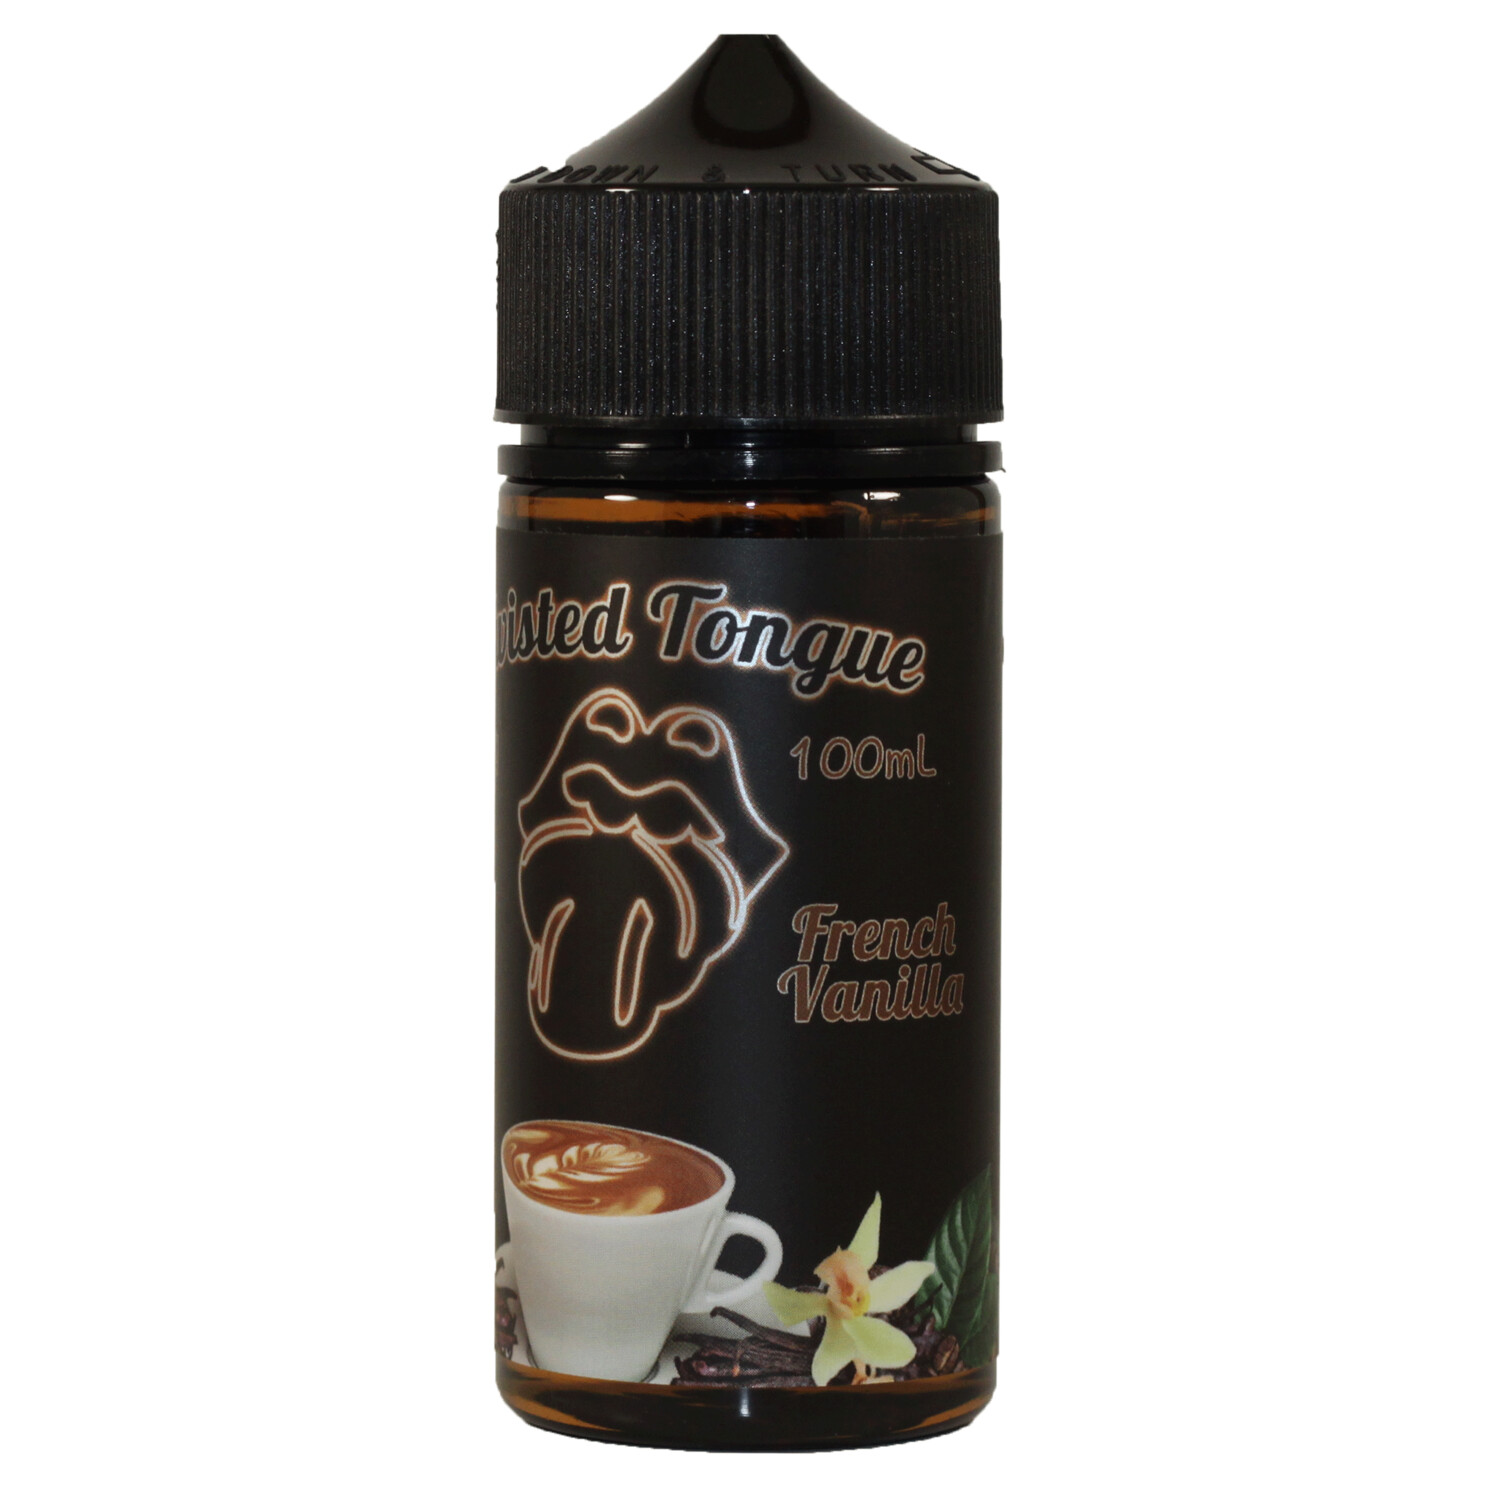 Twisted Tongue French Vanilla 6nic